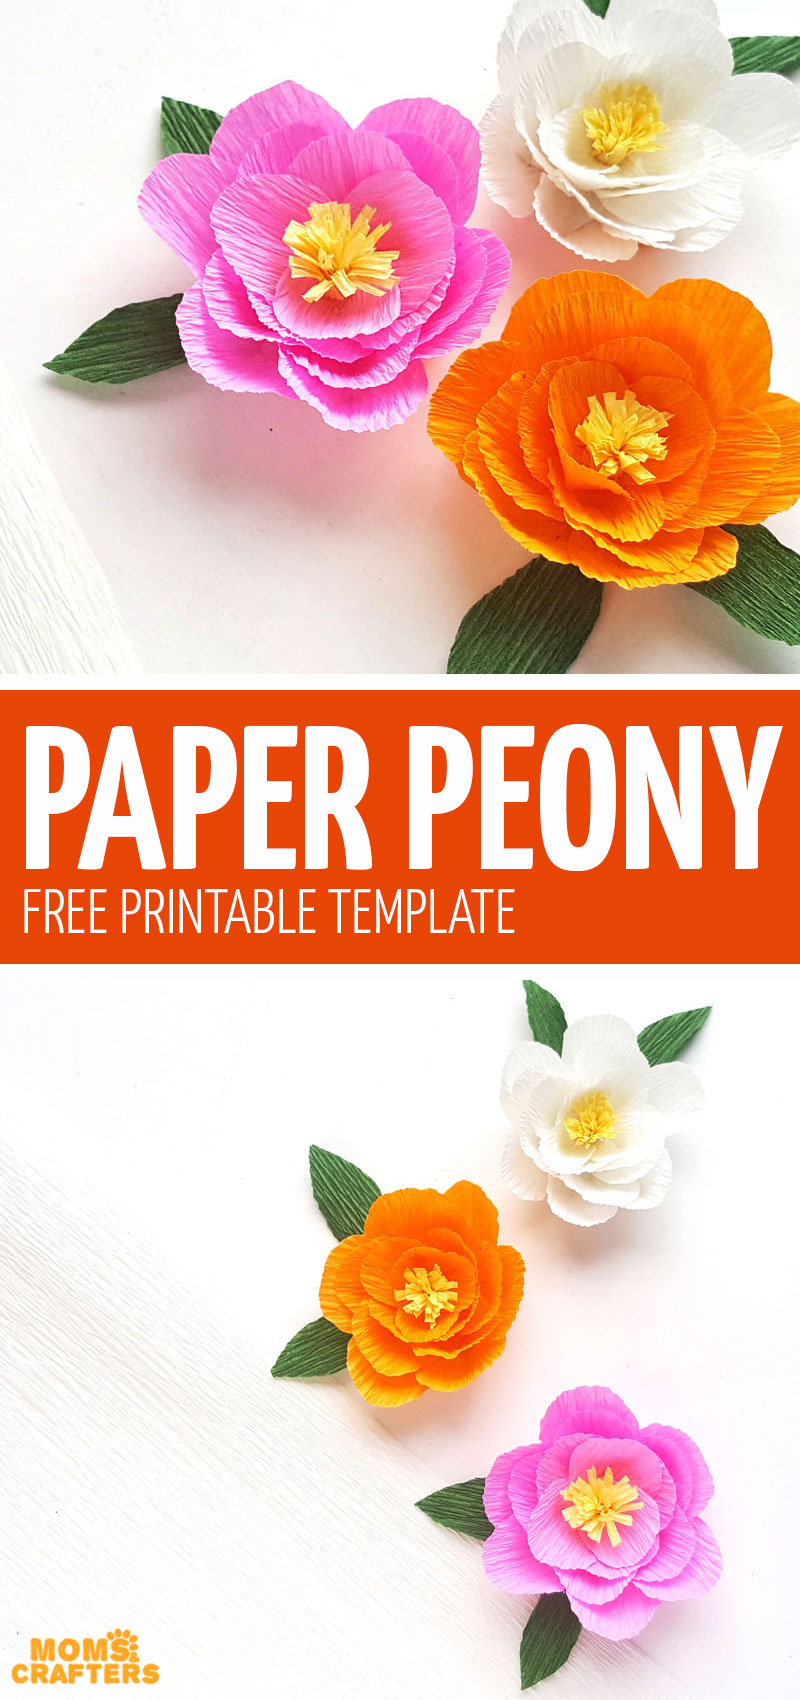 Click if you love making paper flowers and want to download this free printable crepe paper peony template! It's so much fun and one of my favorite paper flowers craft for beginners.